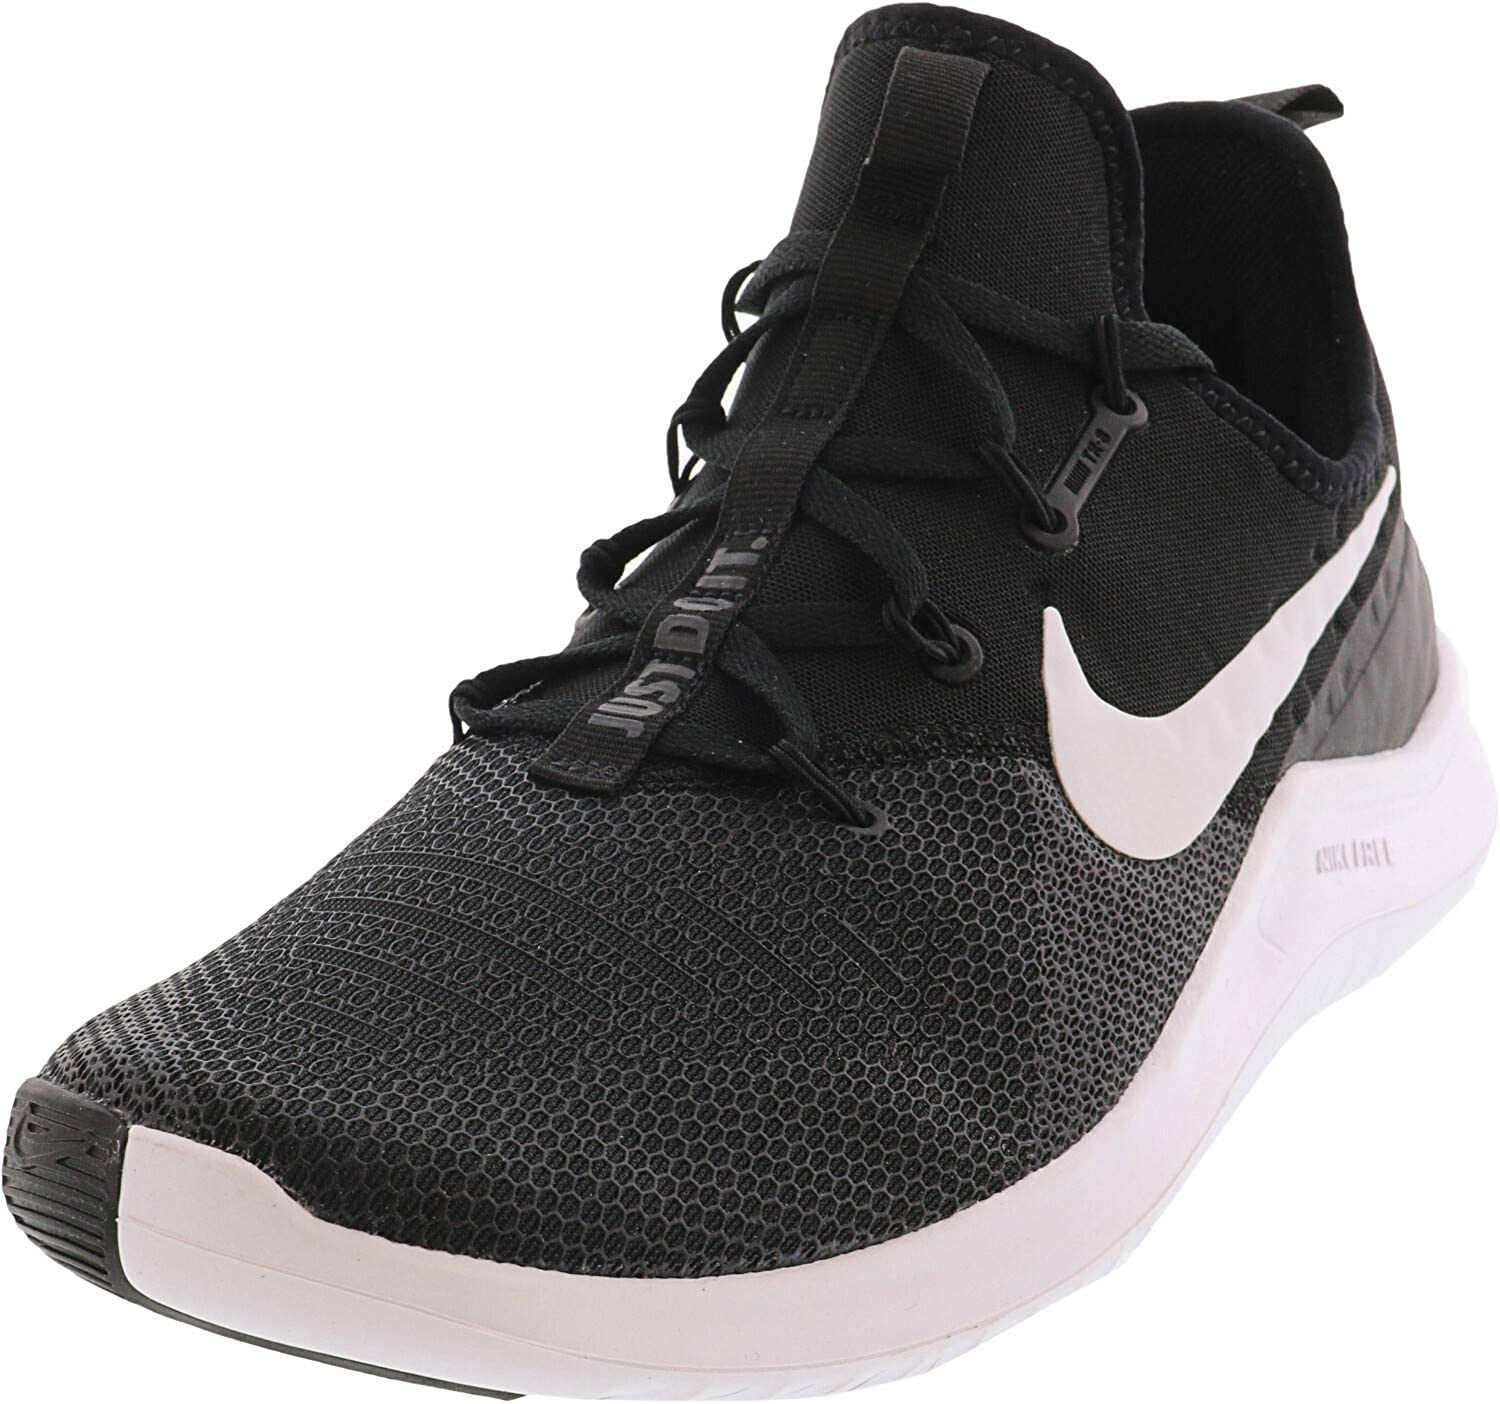 sentar Anoi Adjunto archivo  Amazon.com | Nike Free Tr-8 Mens Running Trainers Sneakers Shoes | Athletic